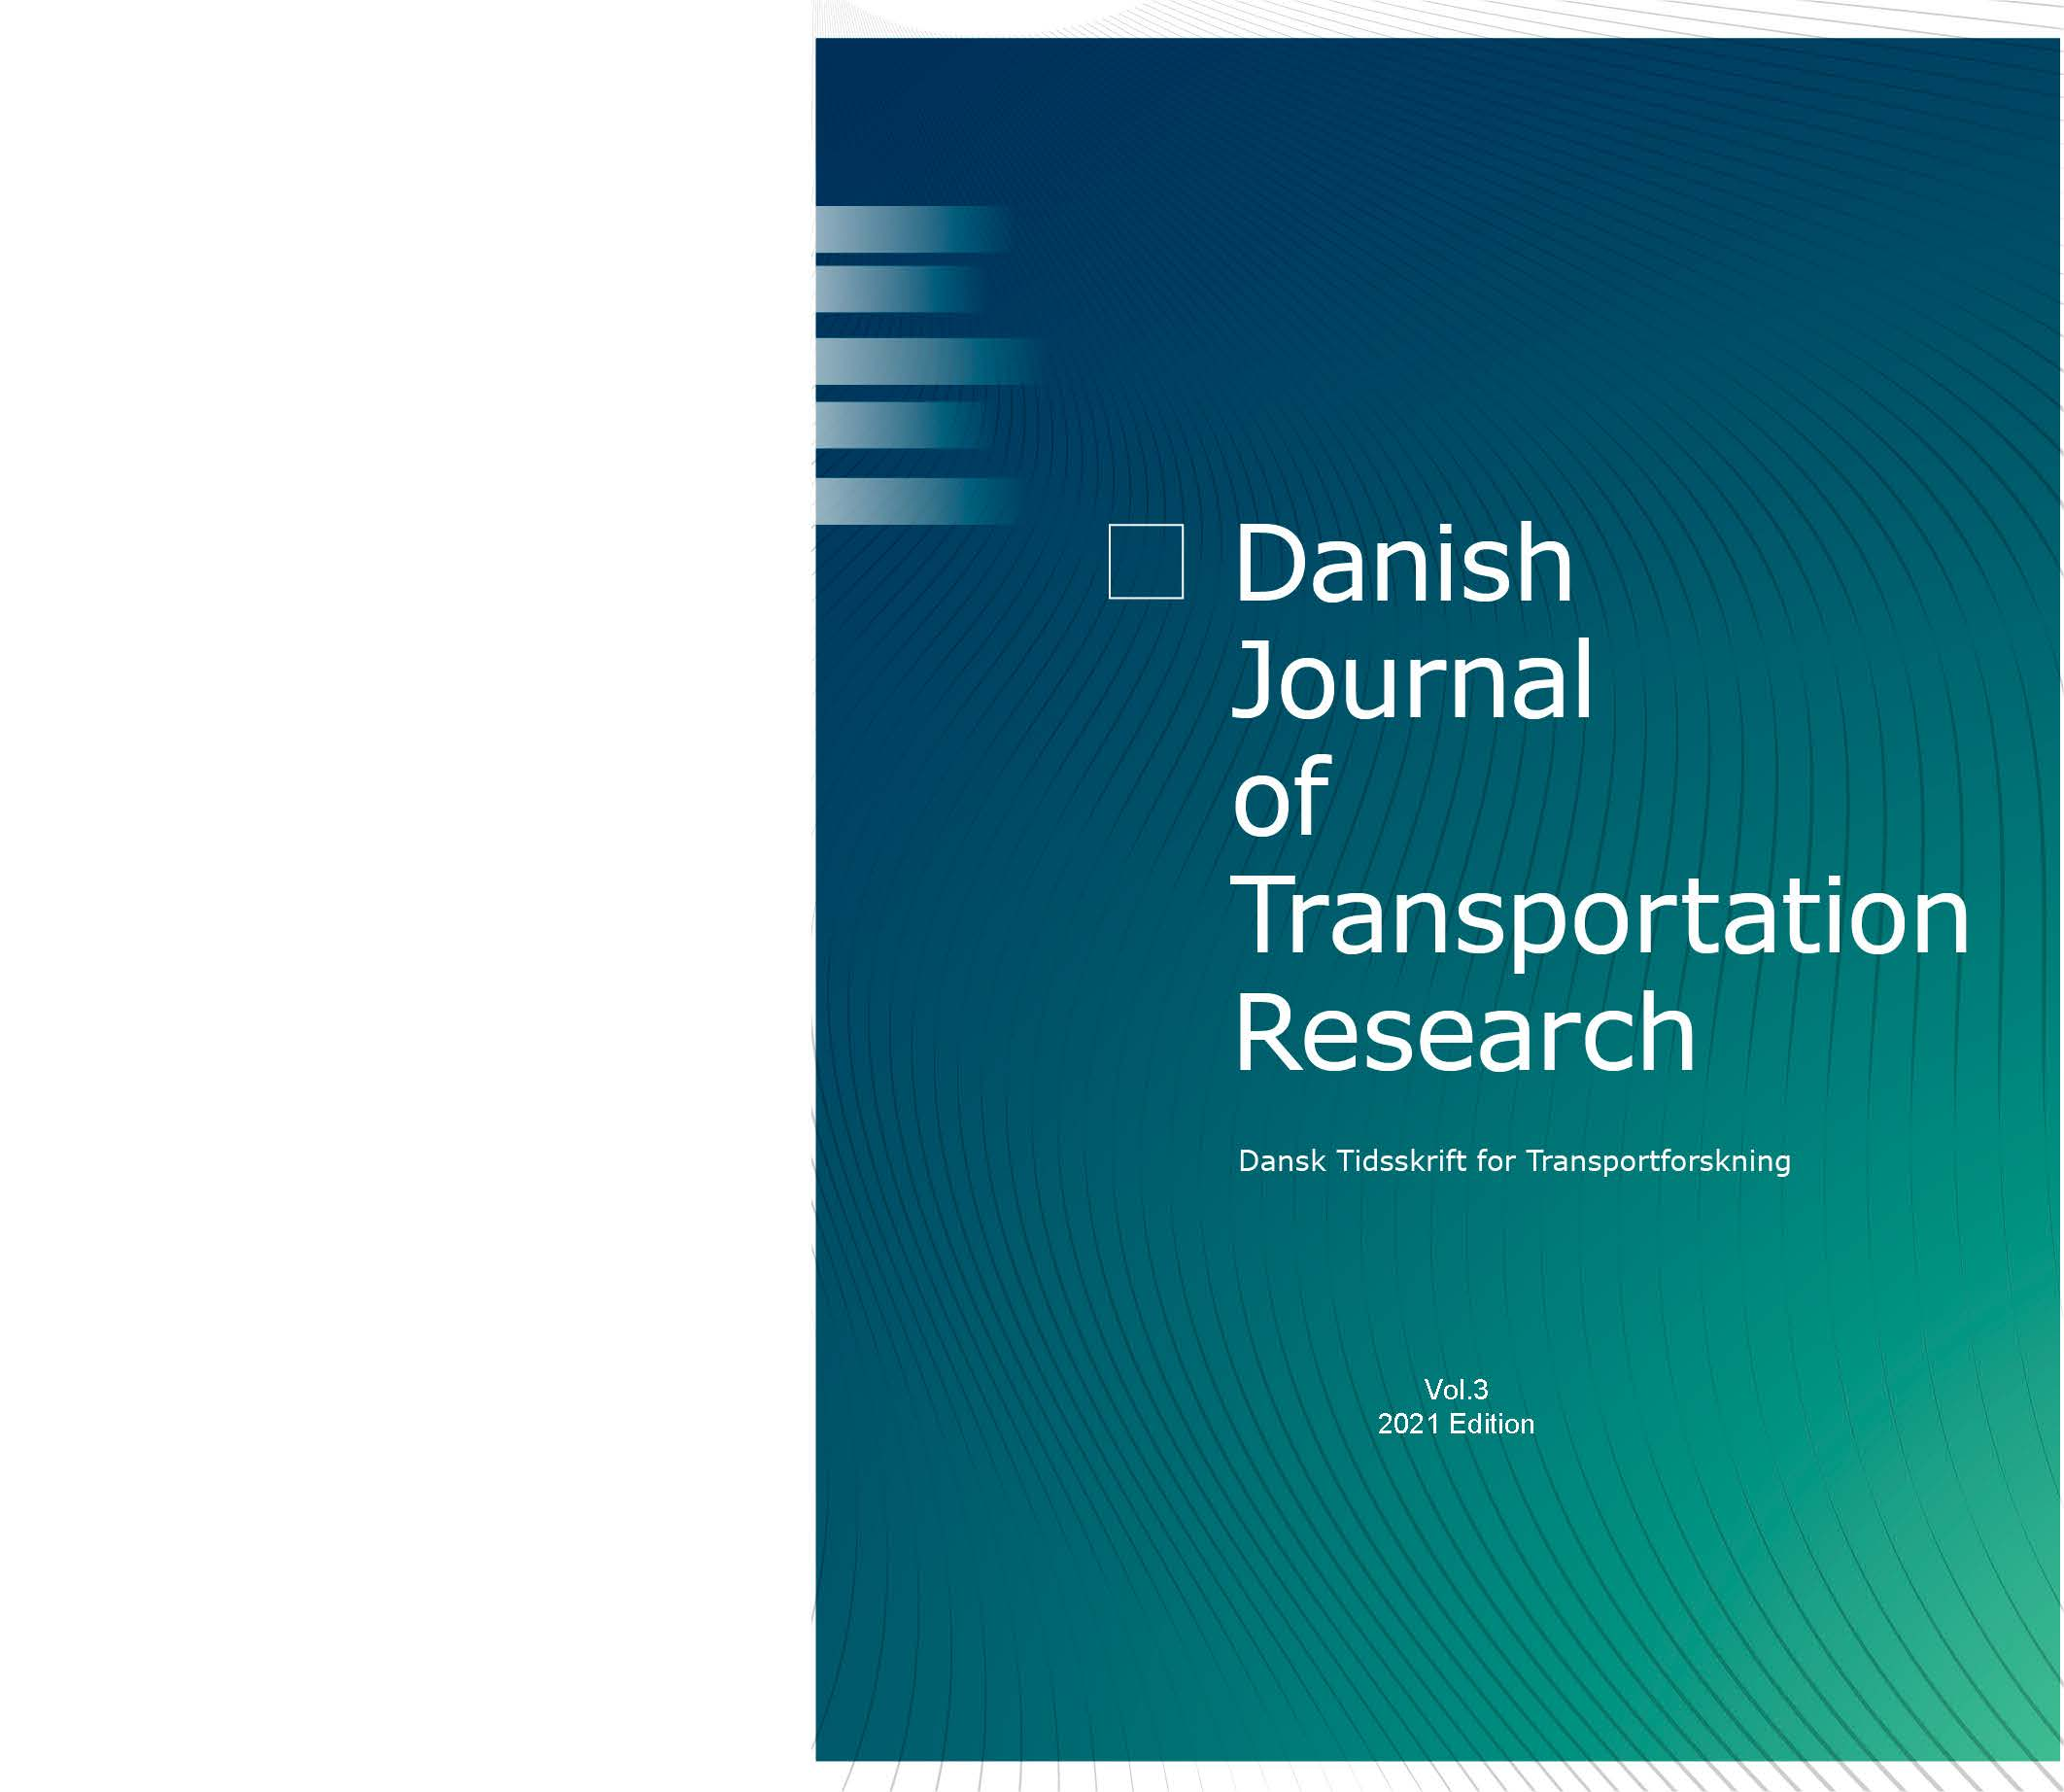 Se Årg. 3 Nr. 1 (2021): Danish Journal of Transportation Research - Dansk tidskrift for transportforskning